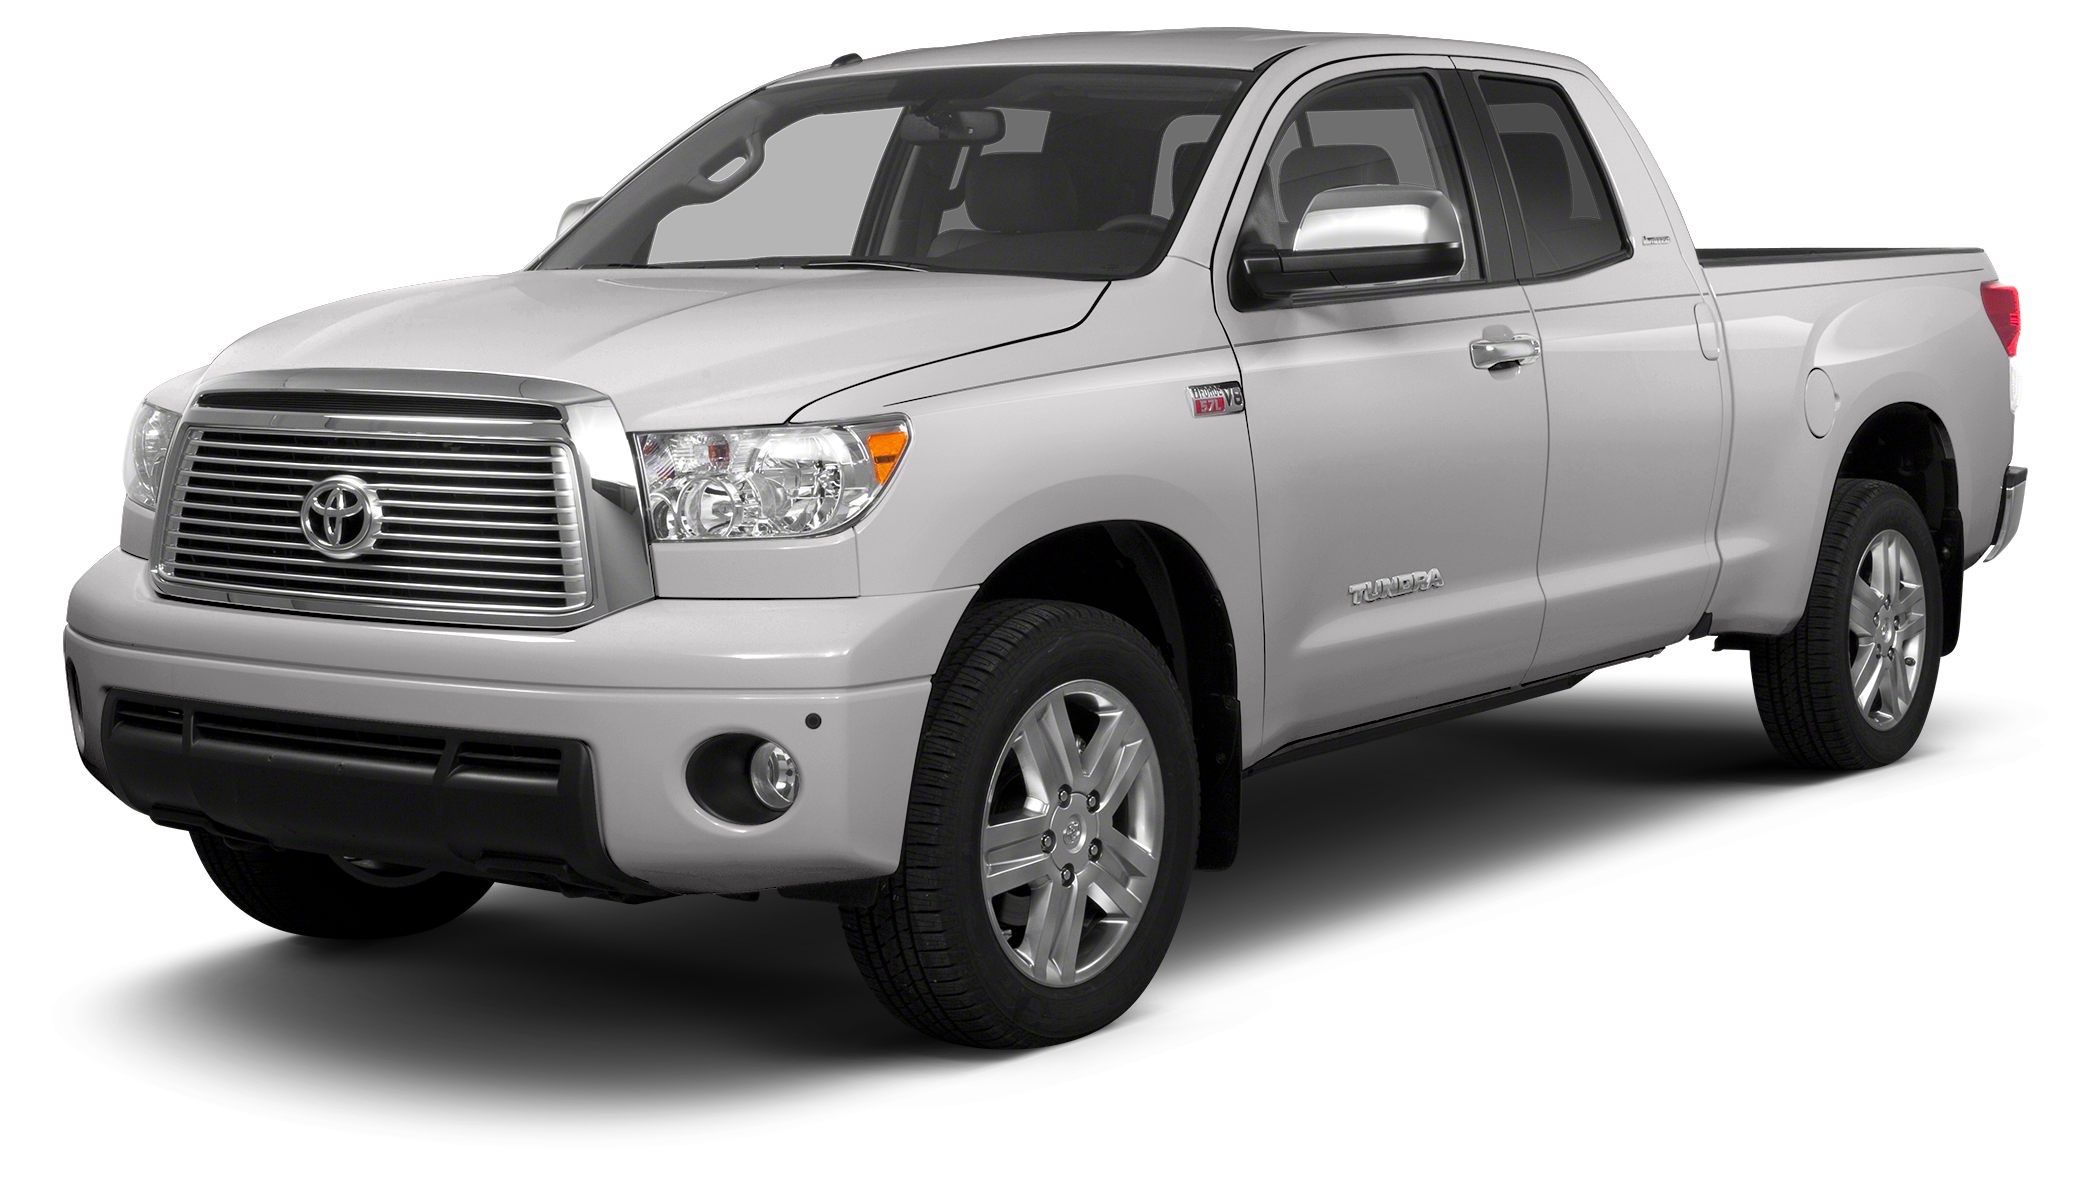 2013 Toyota Tundra  Miles 25961Color White Stock 42614A VIN 5TFUY5F11DX301249